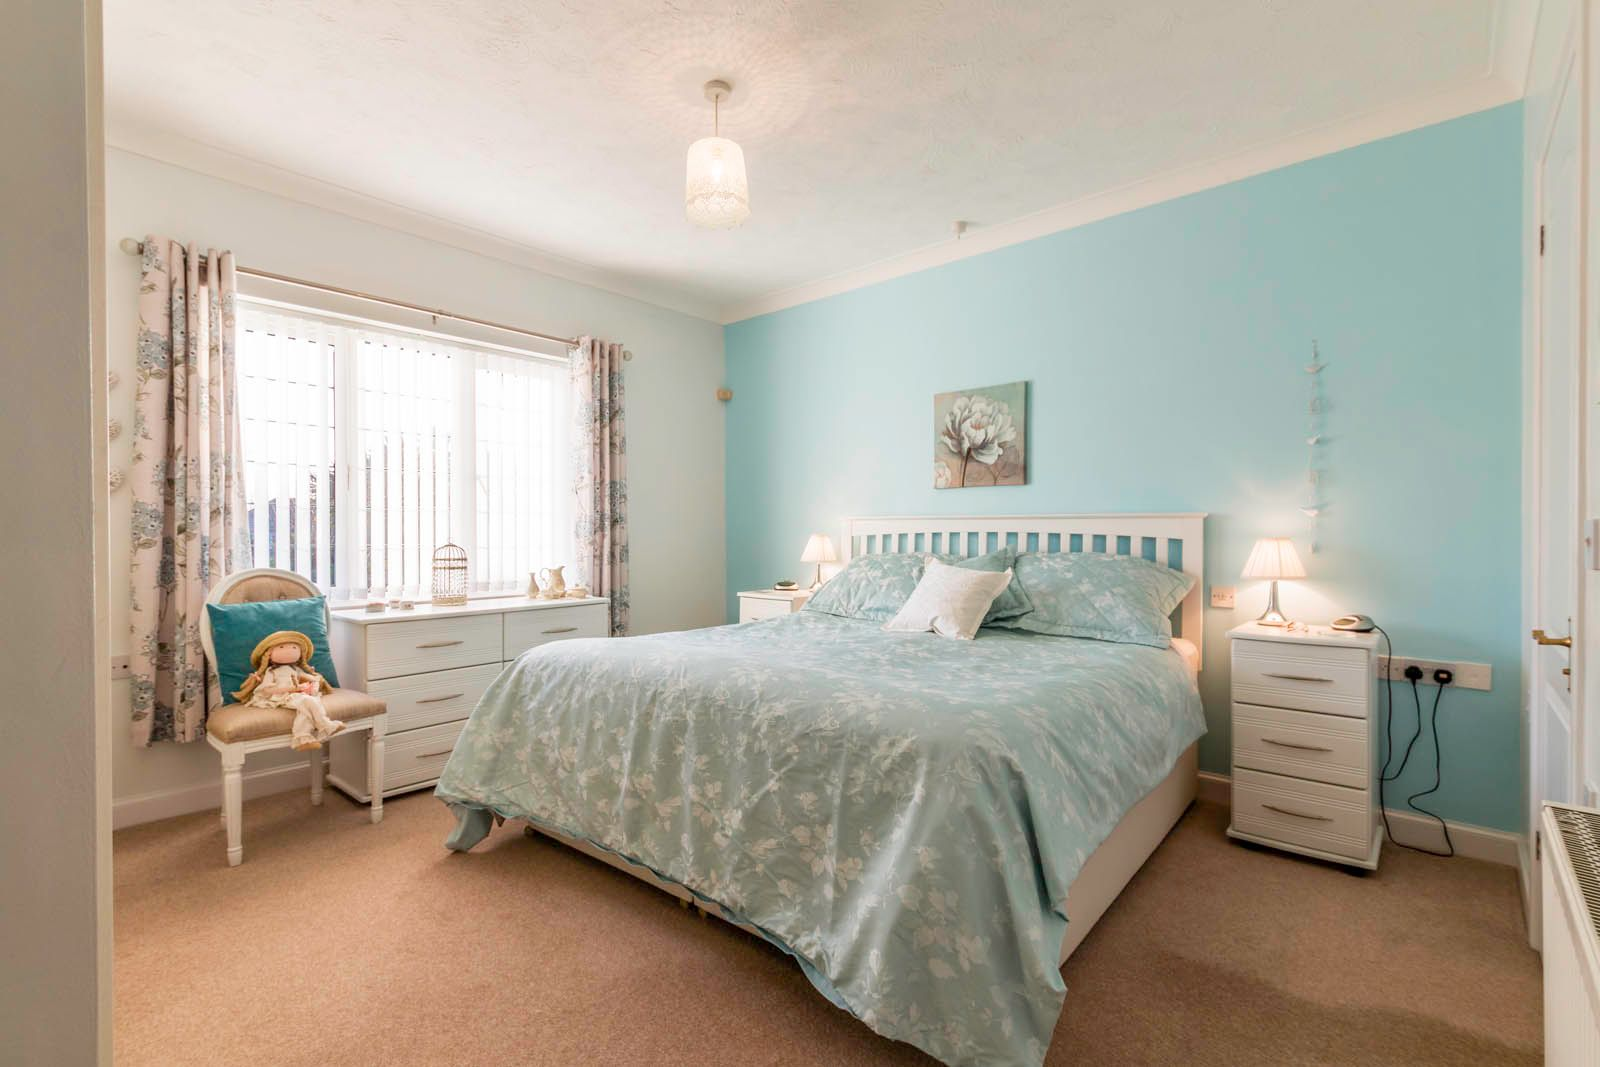 2 bed  for sale in Midholme  - Property Image 5